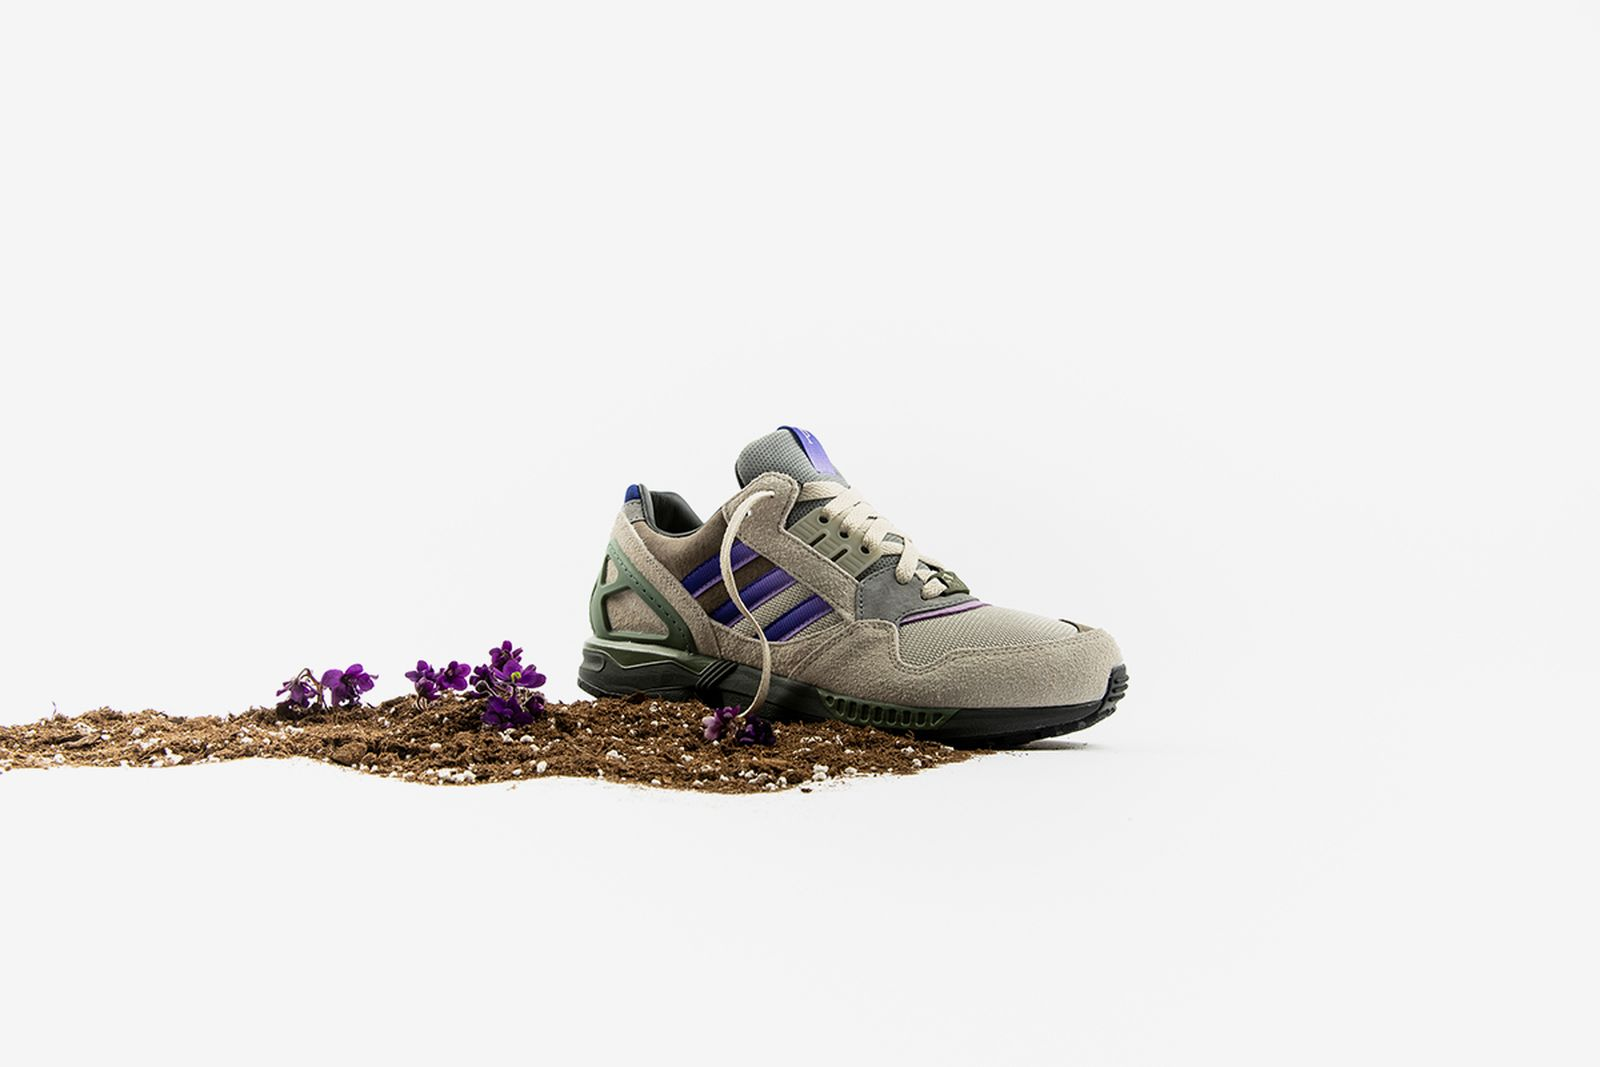 """Packer x adidas ZX 9000 """"Meadow Violet"""""""